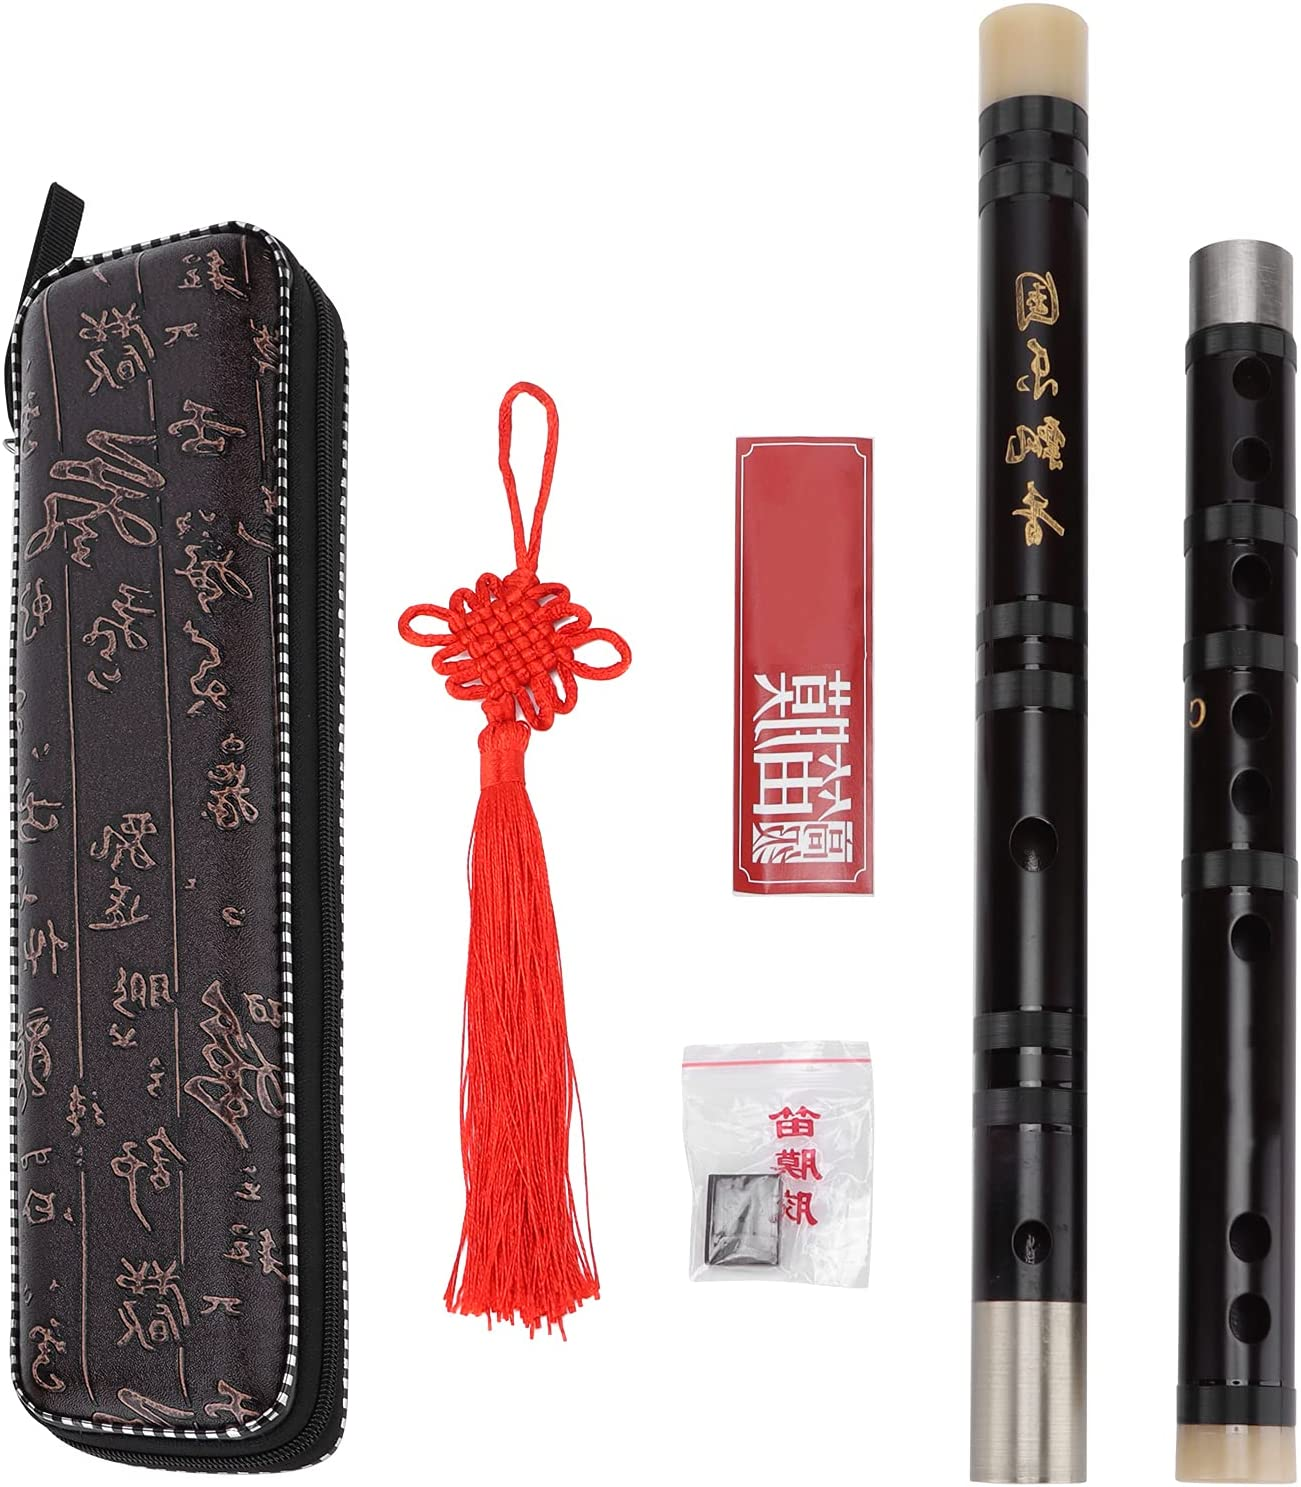 New Max 54% OFF sales Bamboo Flute Rust Proof Design Of No W White Copper Air-leakage